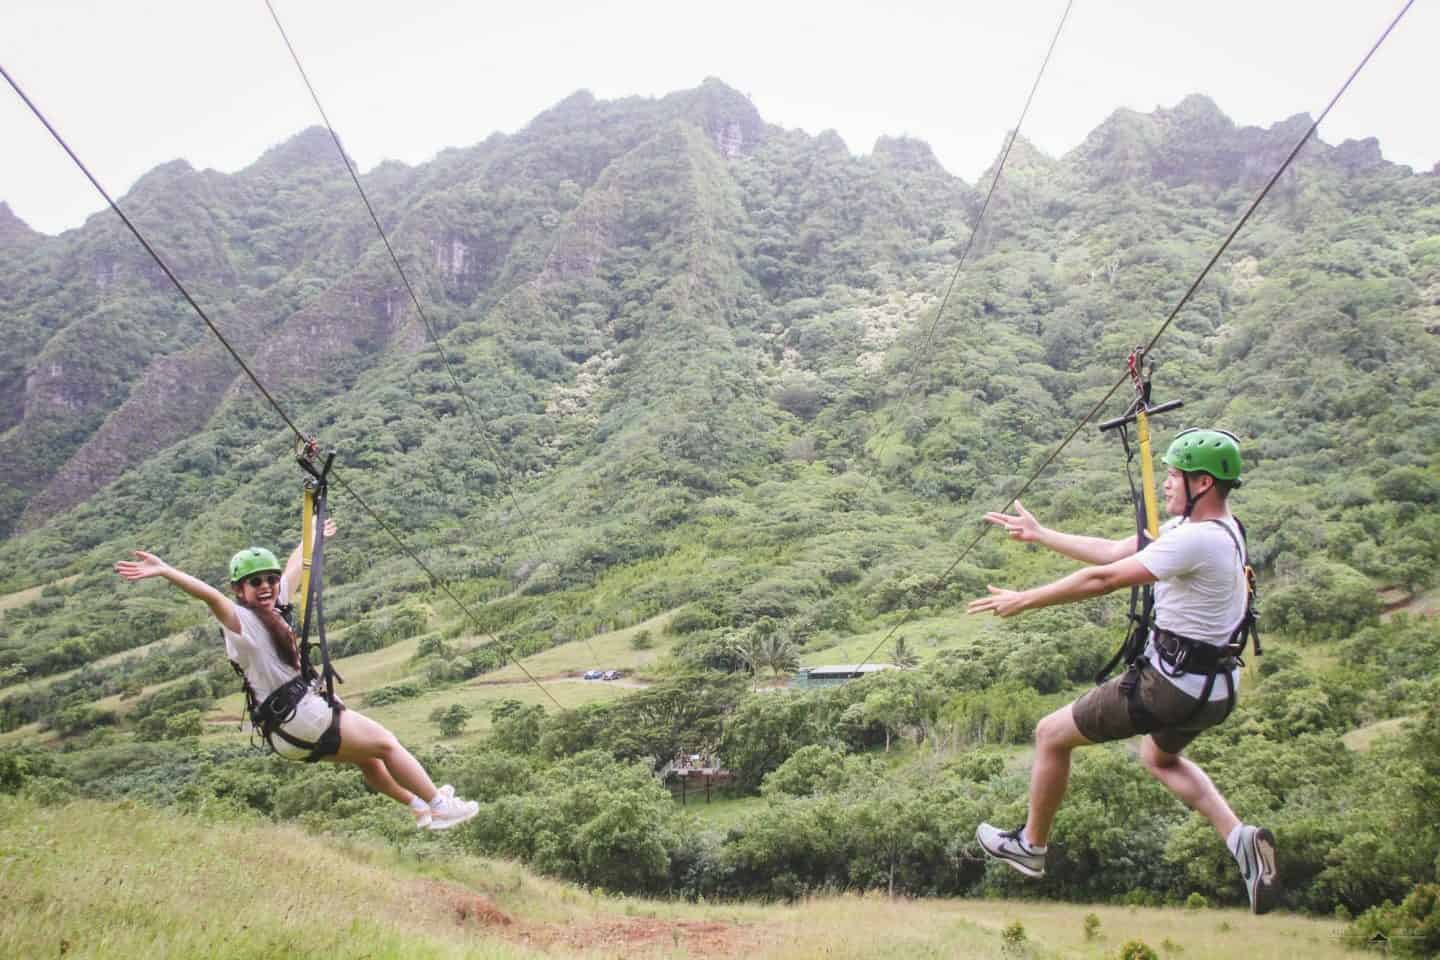 Zip lining at Kualoa Ranch, one of the coolest things to add to your Oahu itinerary